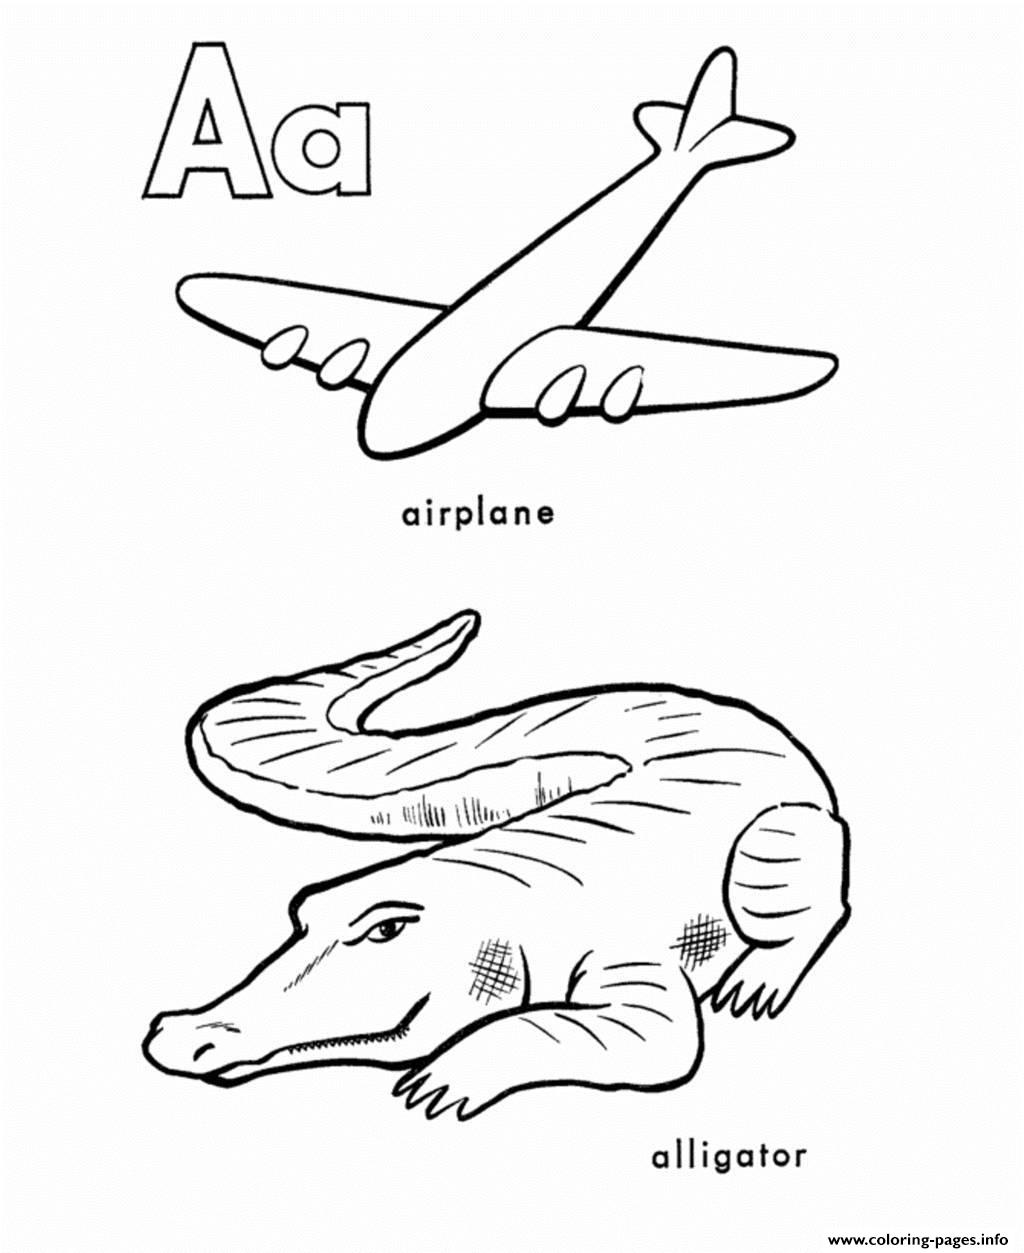 Alphabet S Printable A Is For Airplane And Alligator16e3